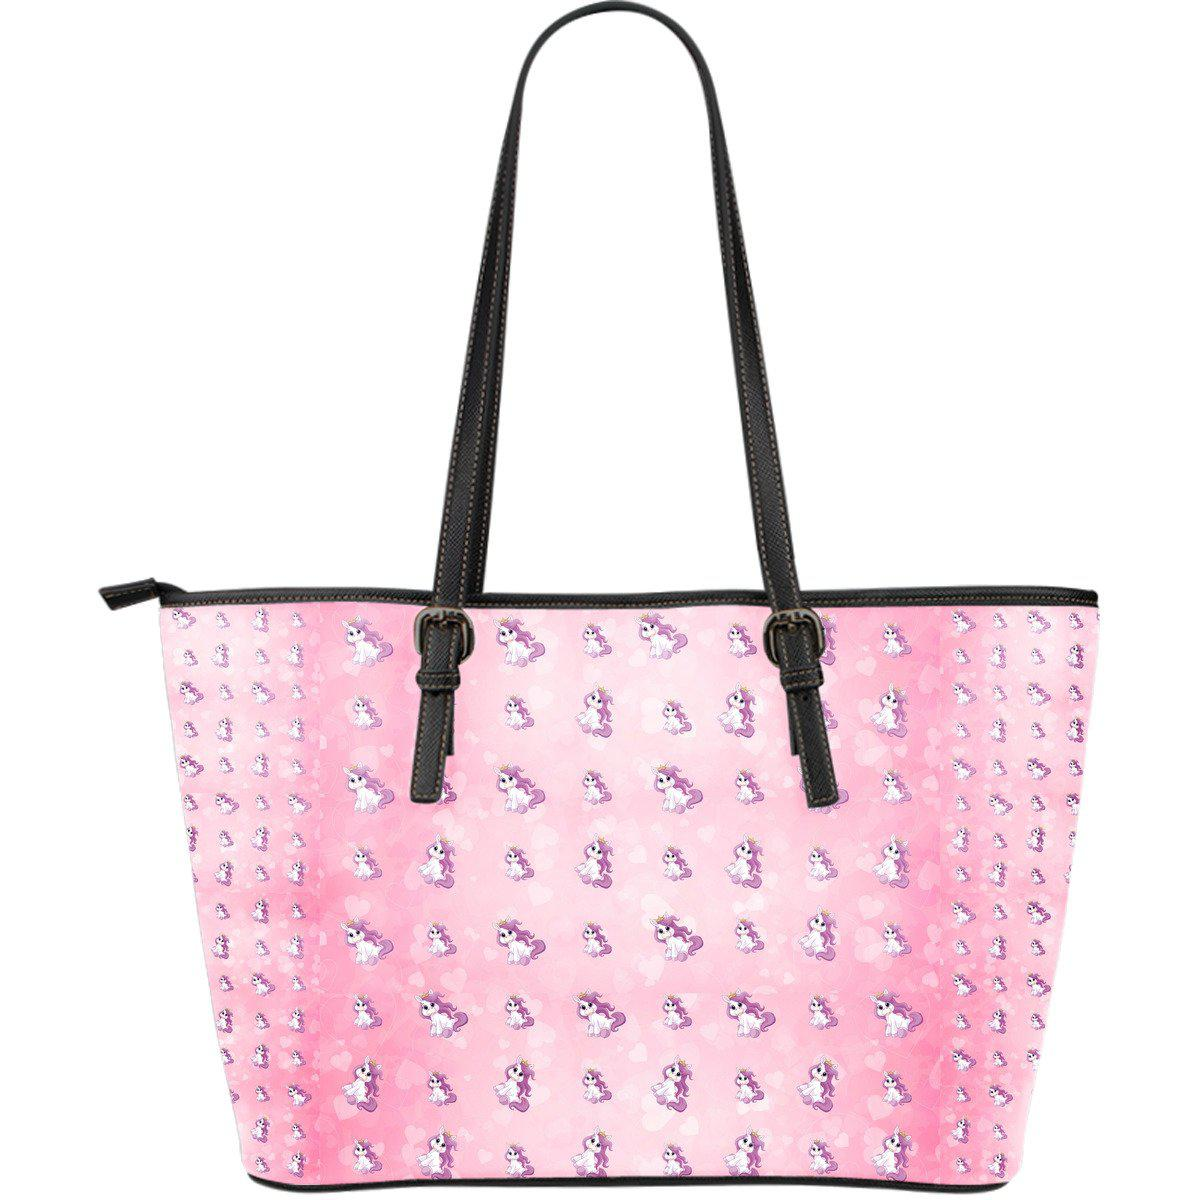 Shopeholic:Unicorn Dream Large Leather Tote Bag